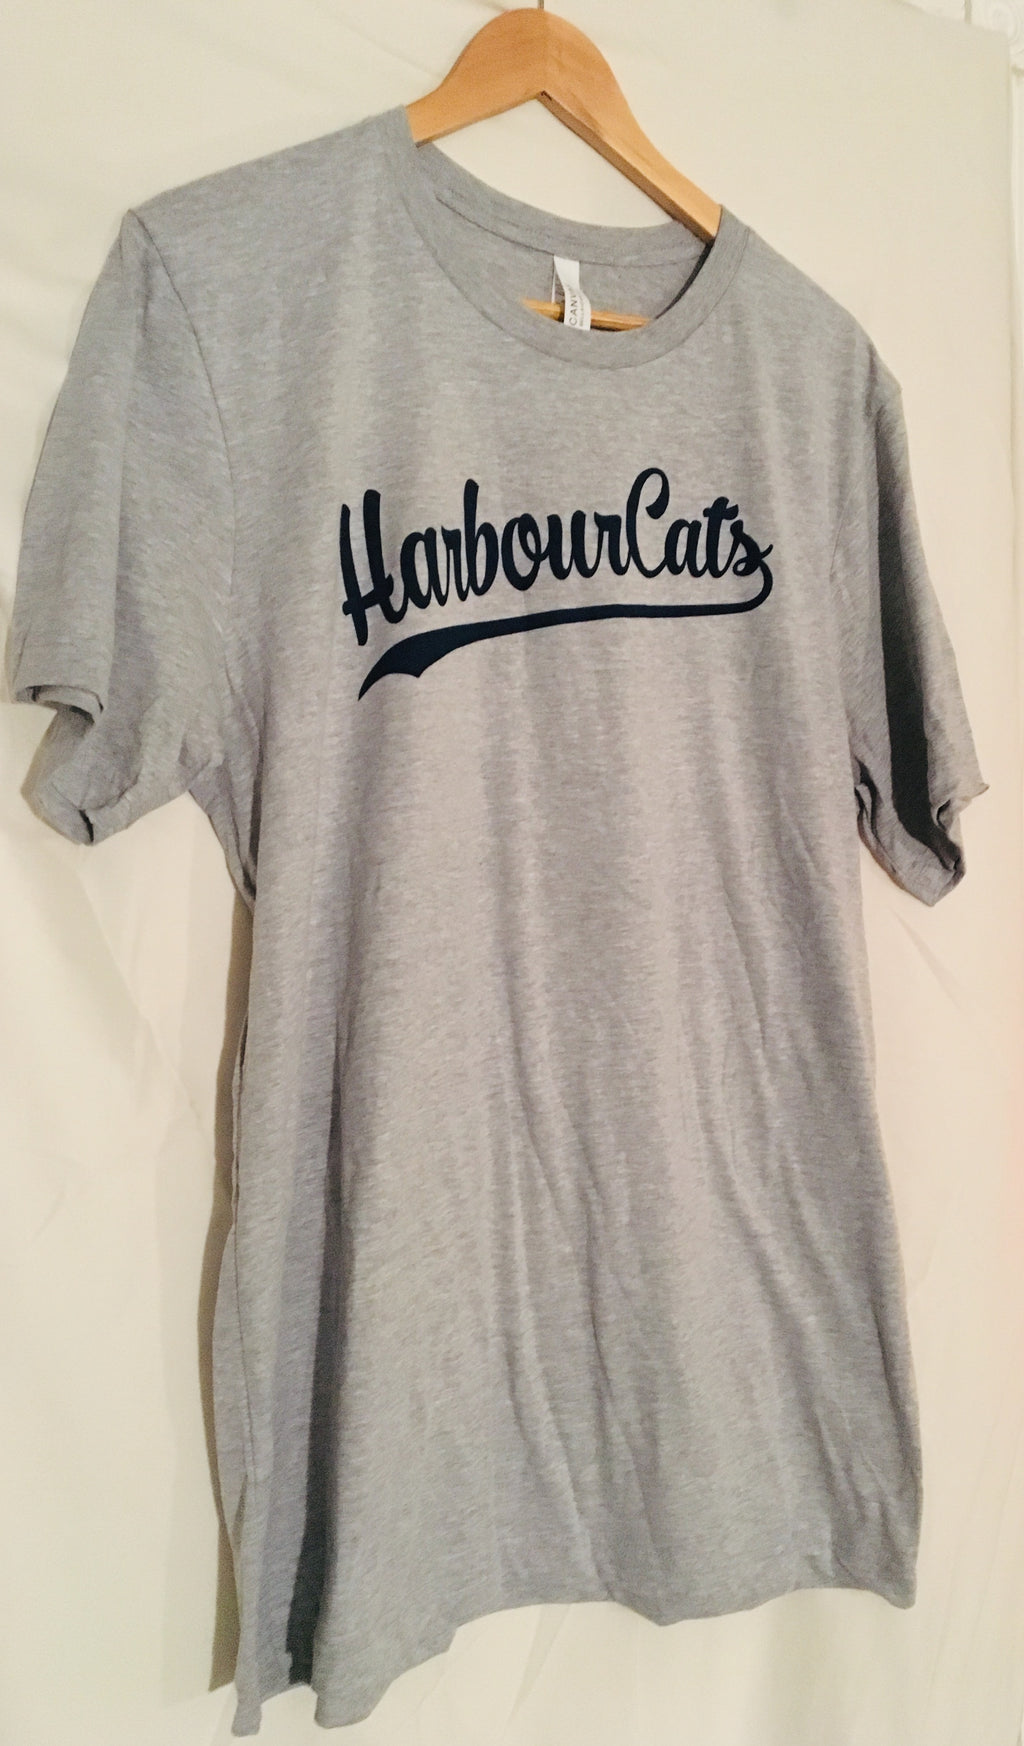 HarbourCats Script T Shirt Gray / Navy